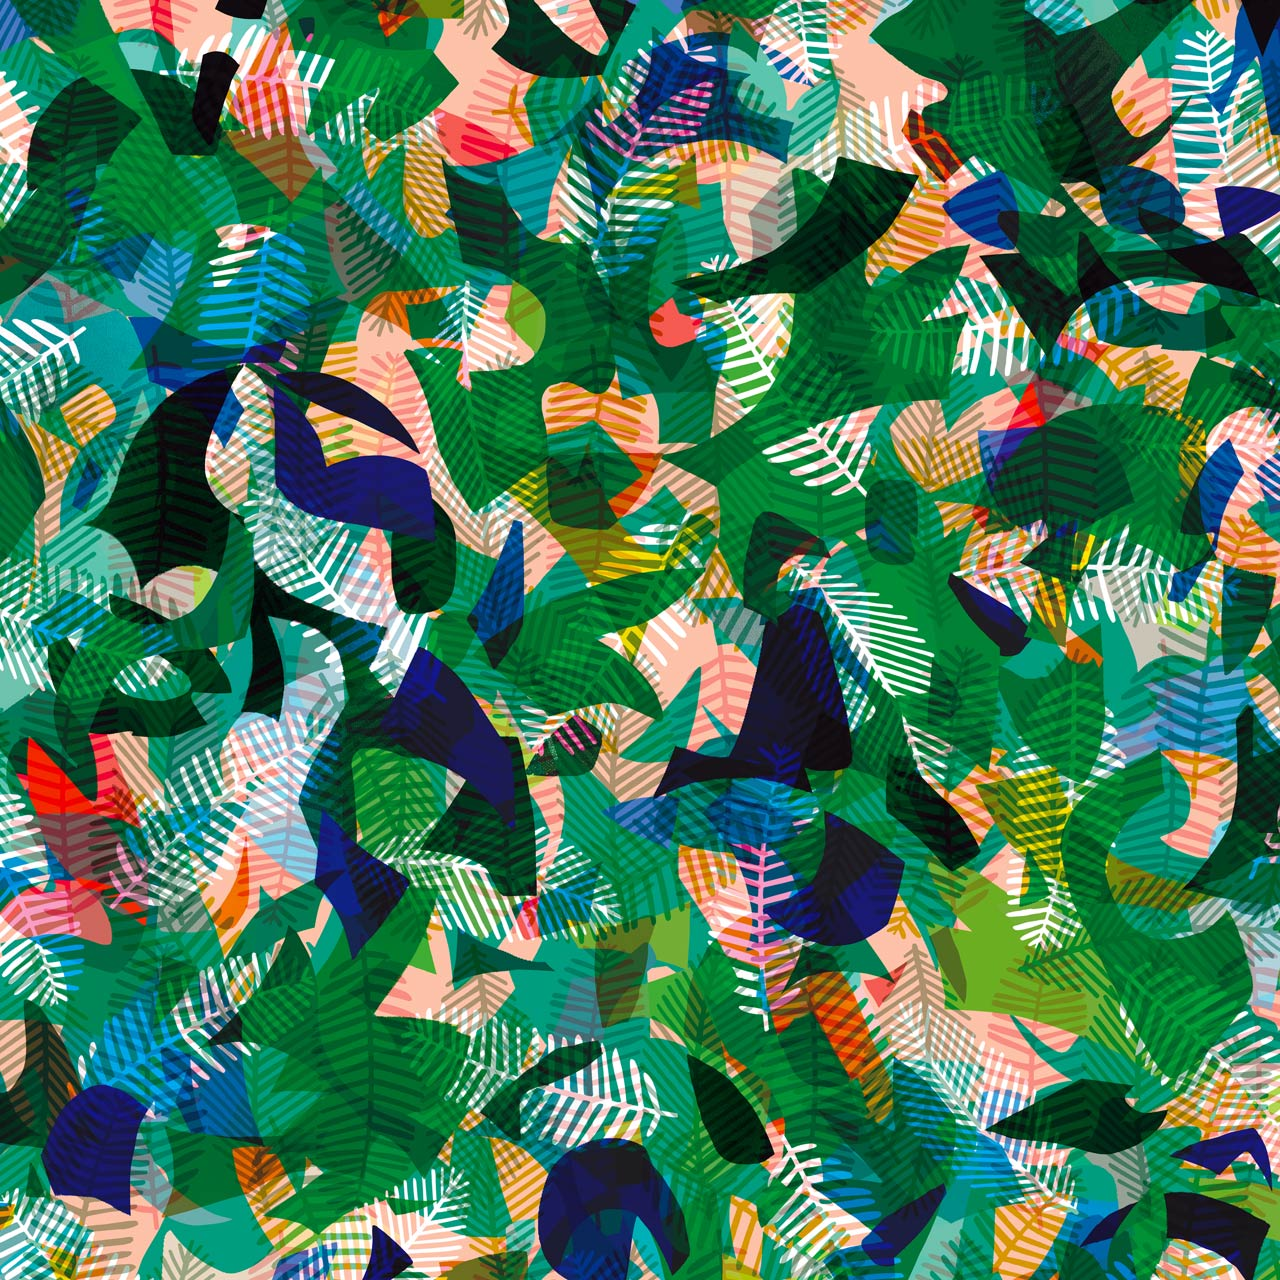 Paper Jungle Rayon Fabric, By the Half or Full Metre